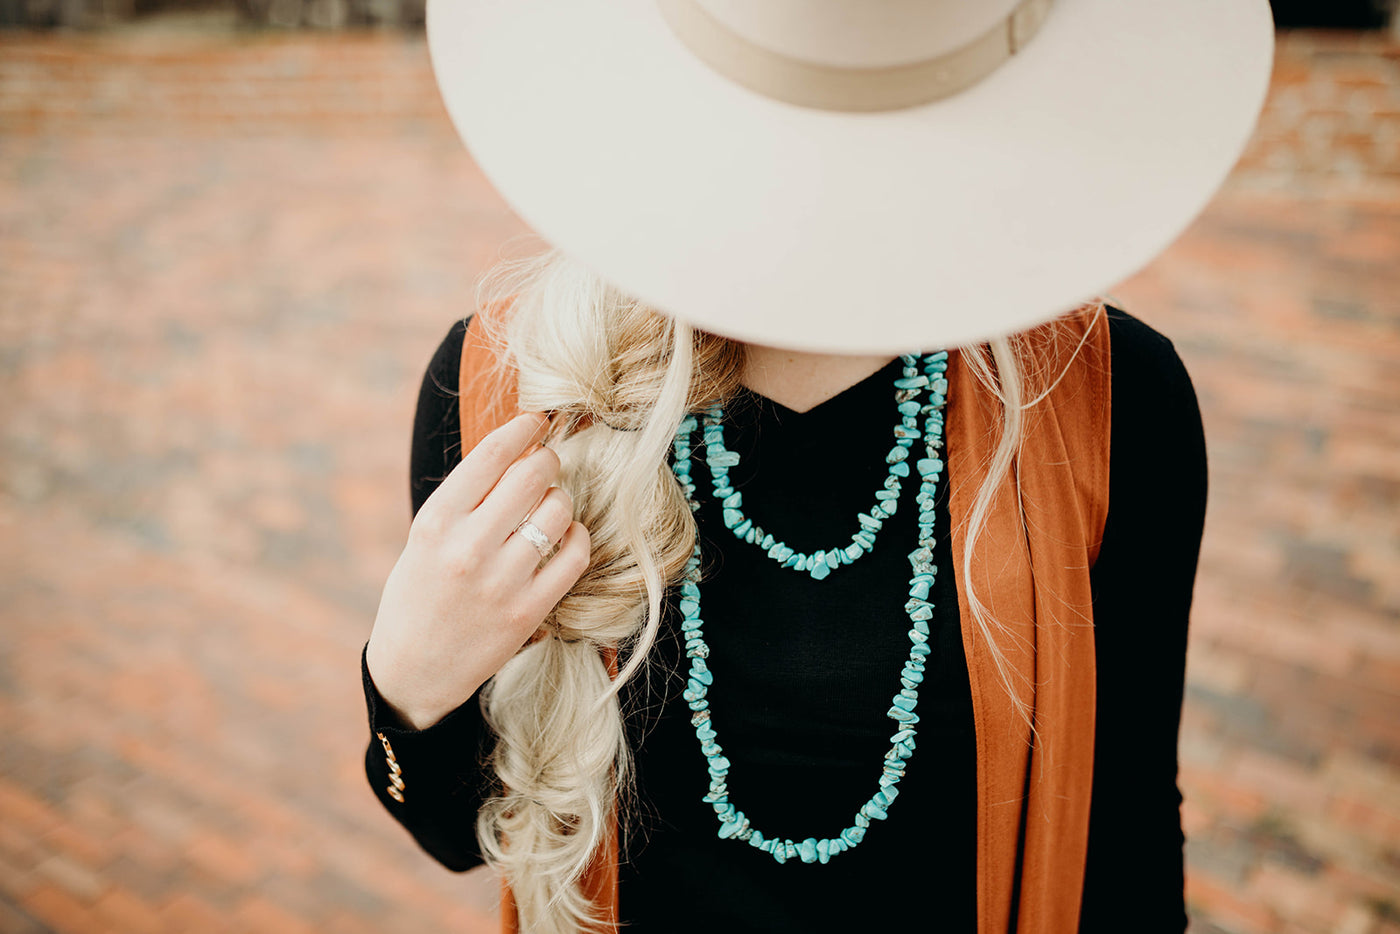 Essential Tips for Accessorizing an Outfit